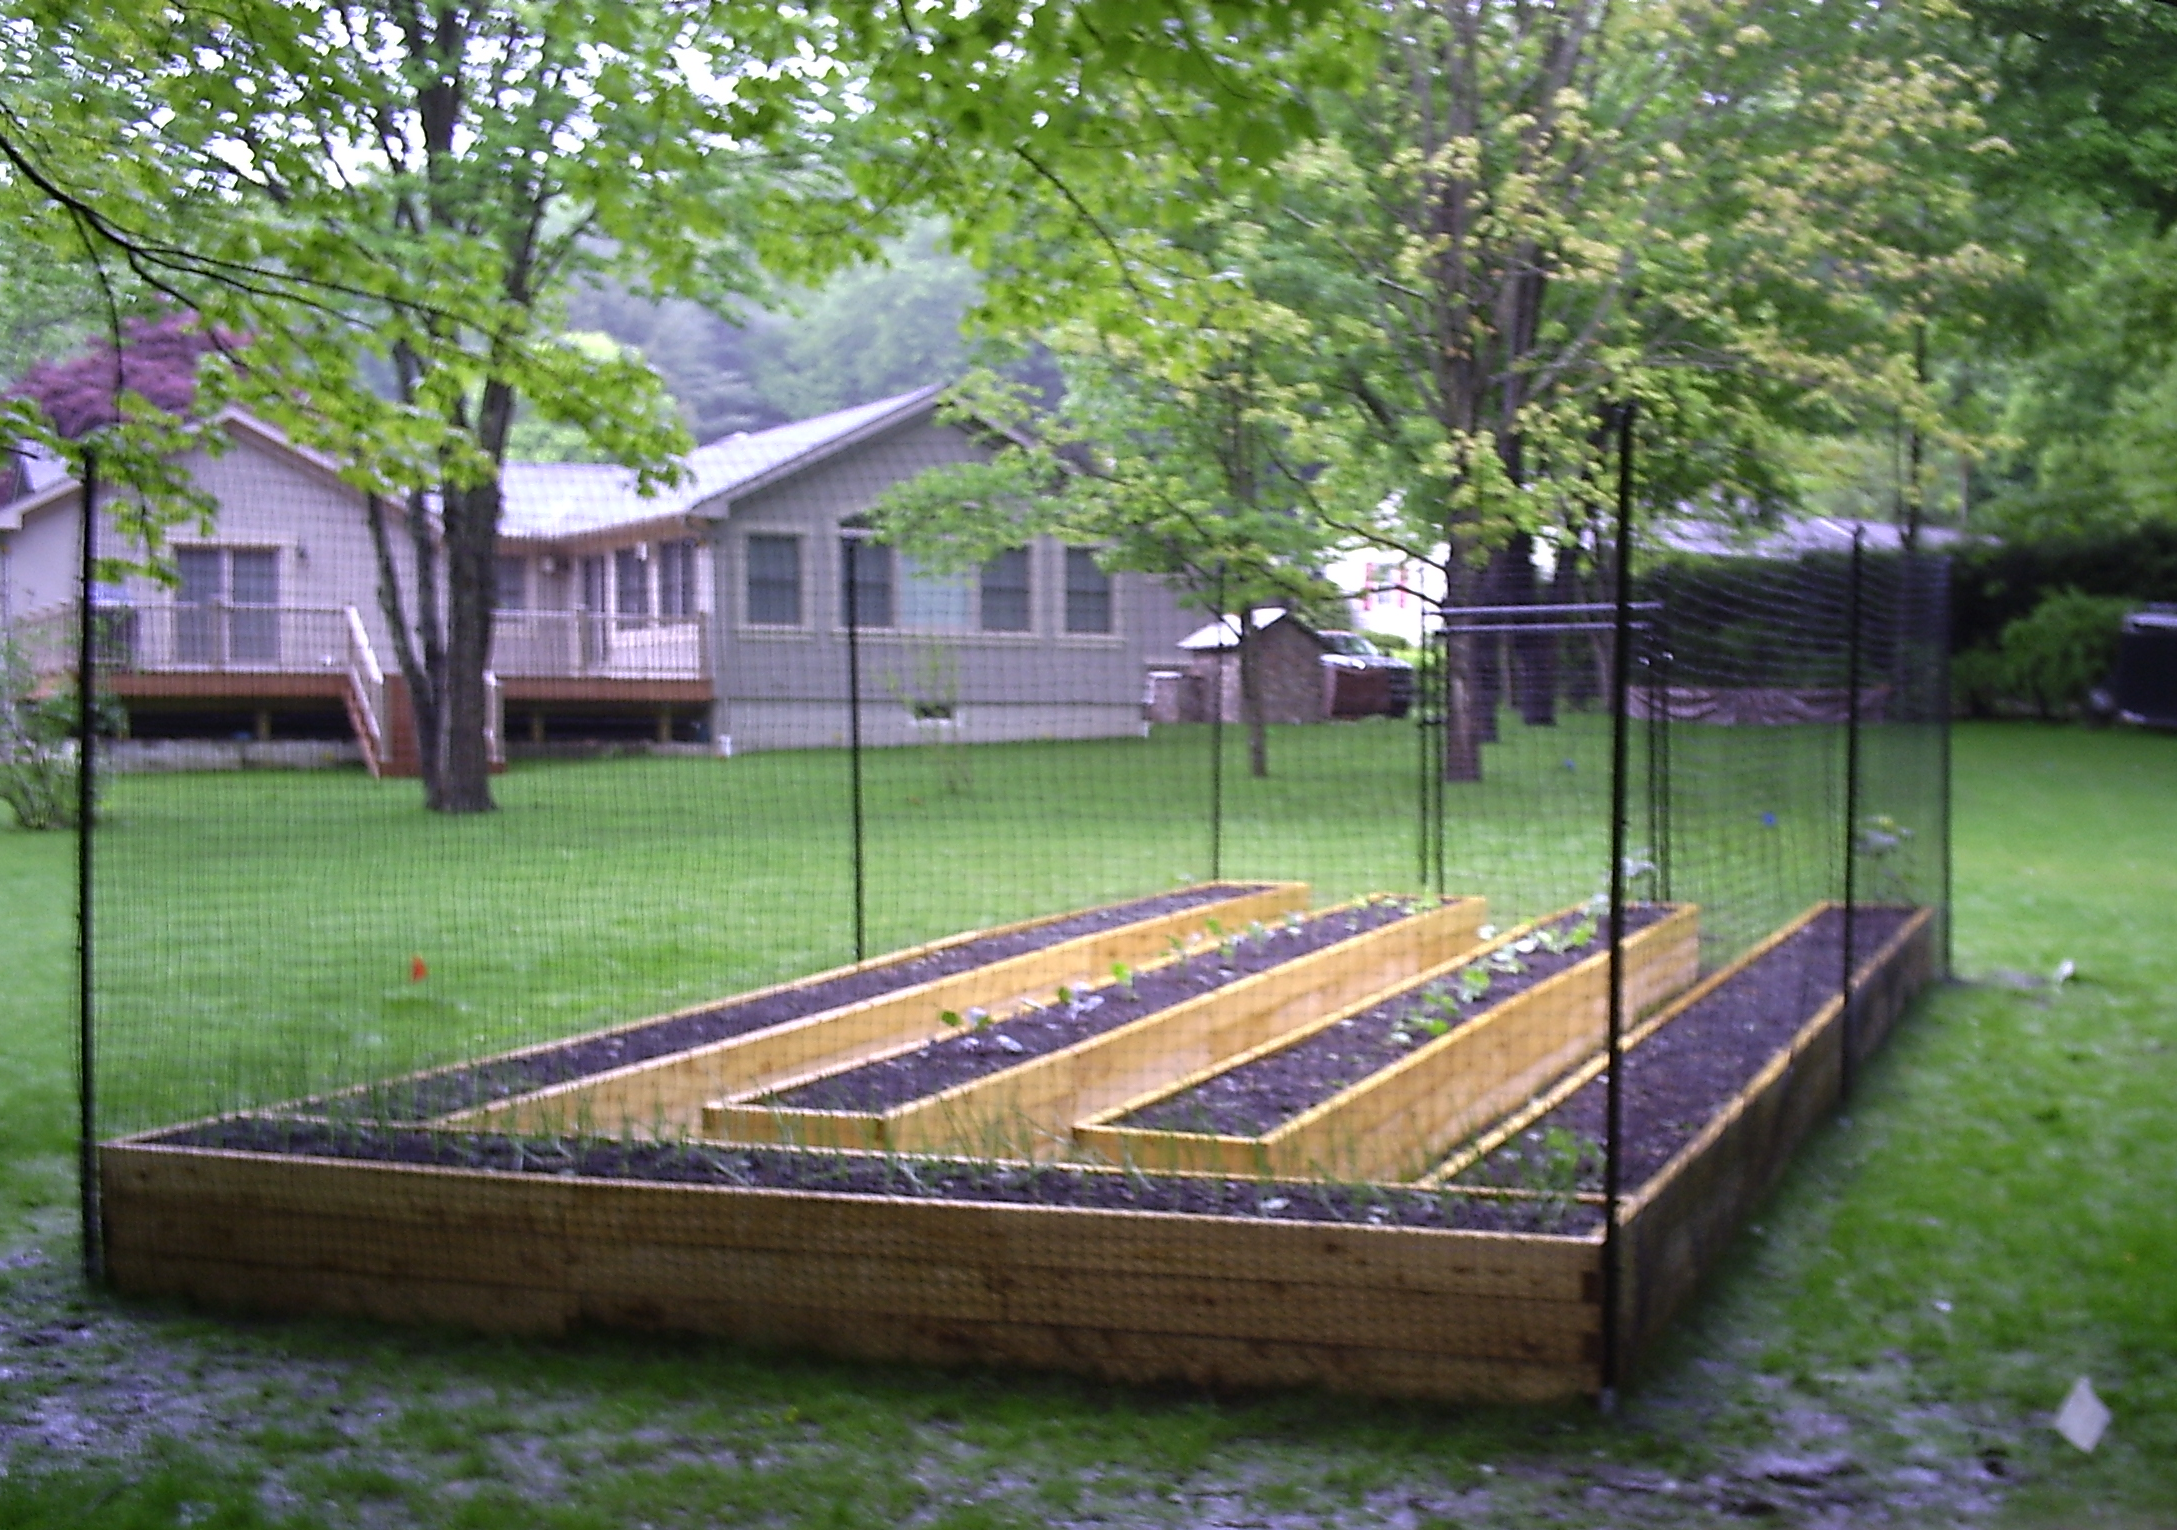 This garden has two great deterrents raised beds AND